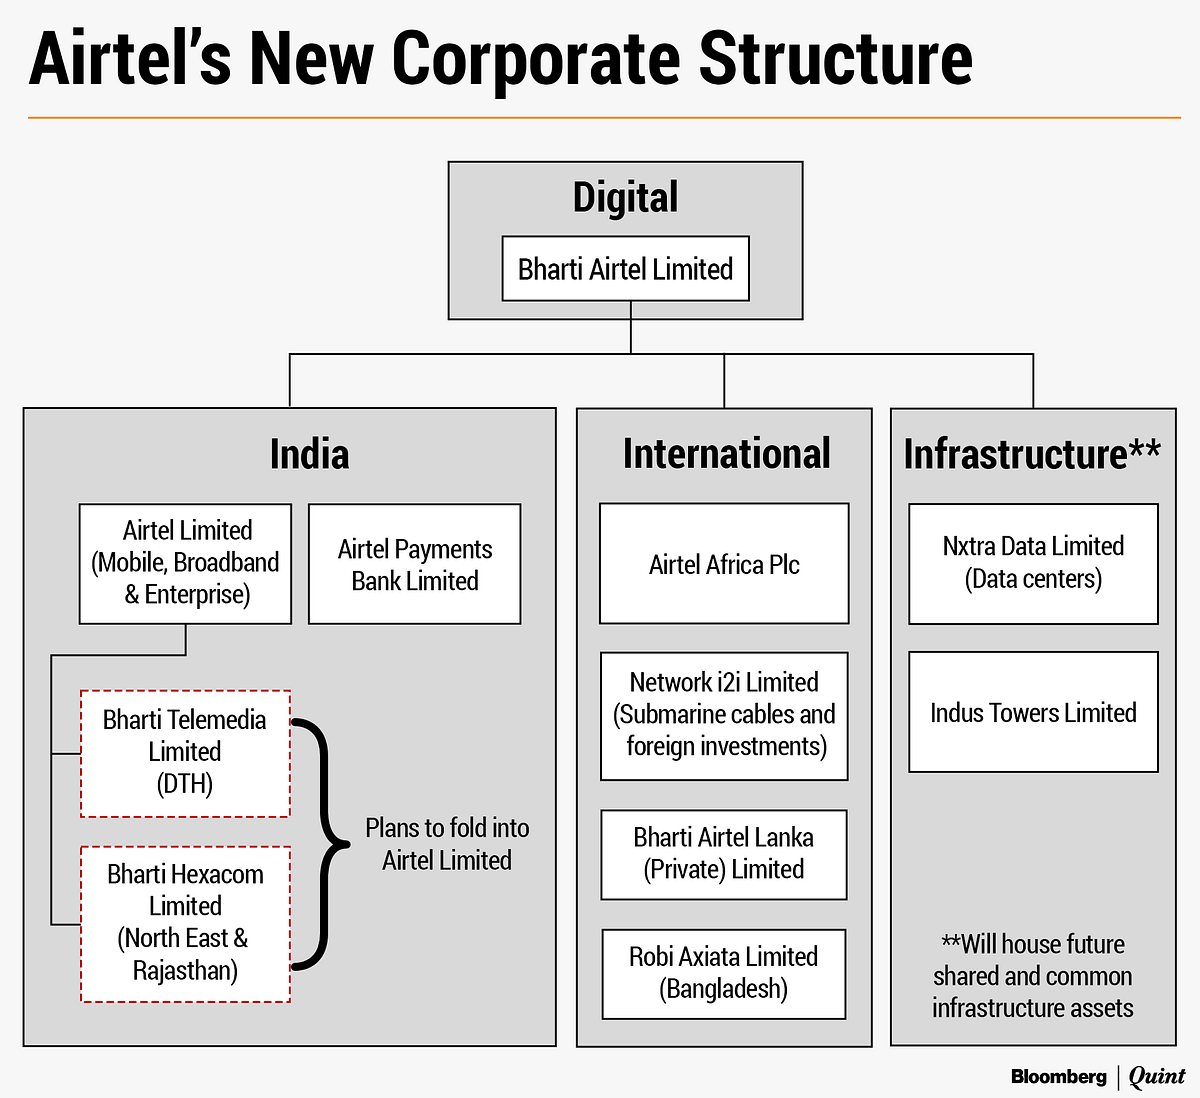 Bharti Airtel's new corporate structure. (Image: Recreated from company media statement)